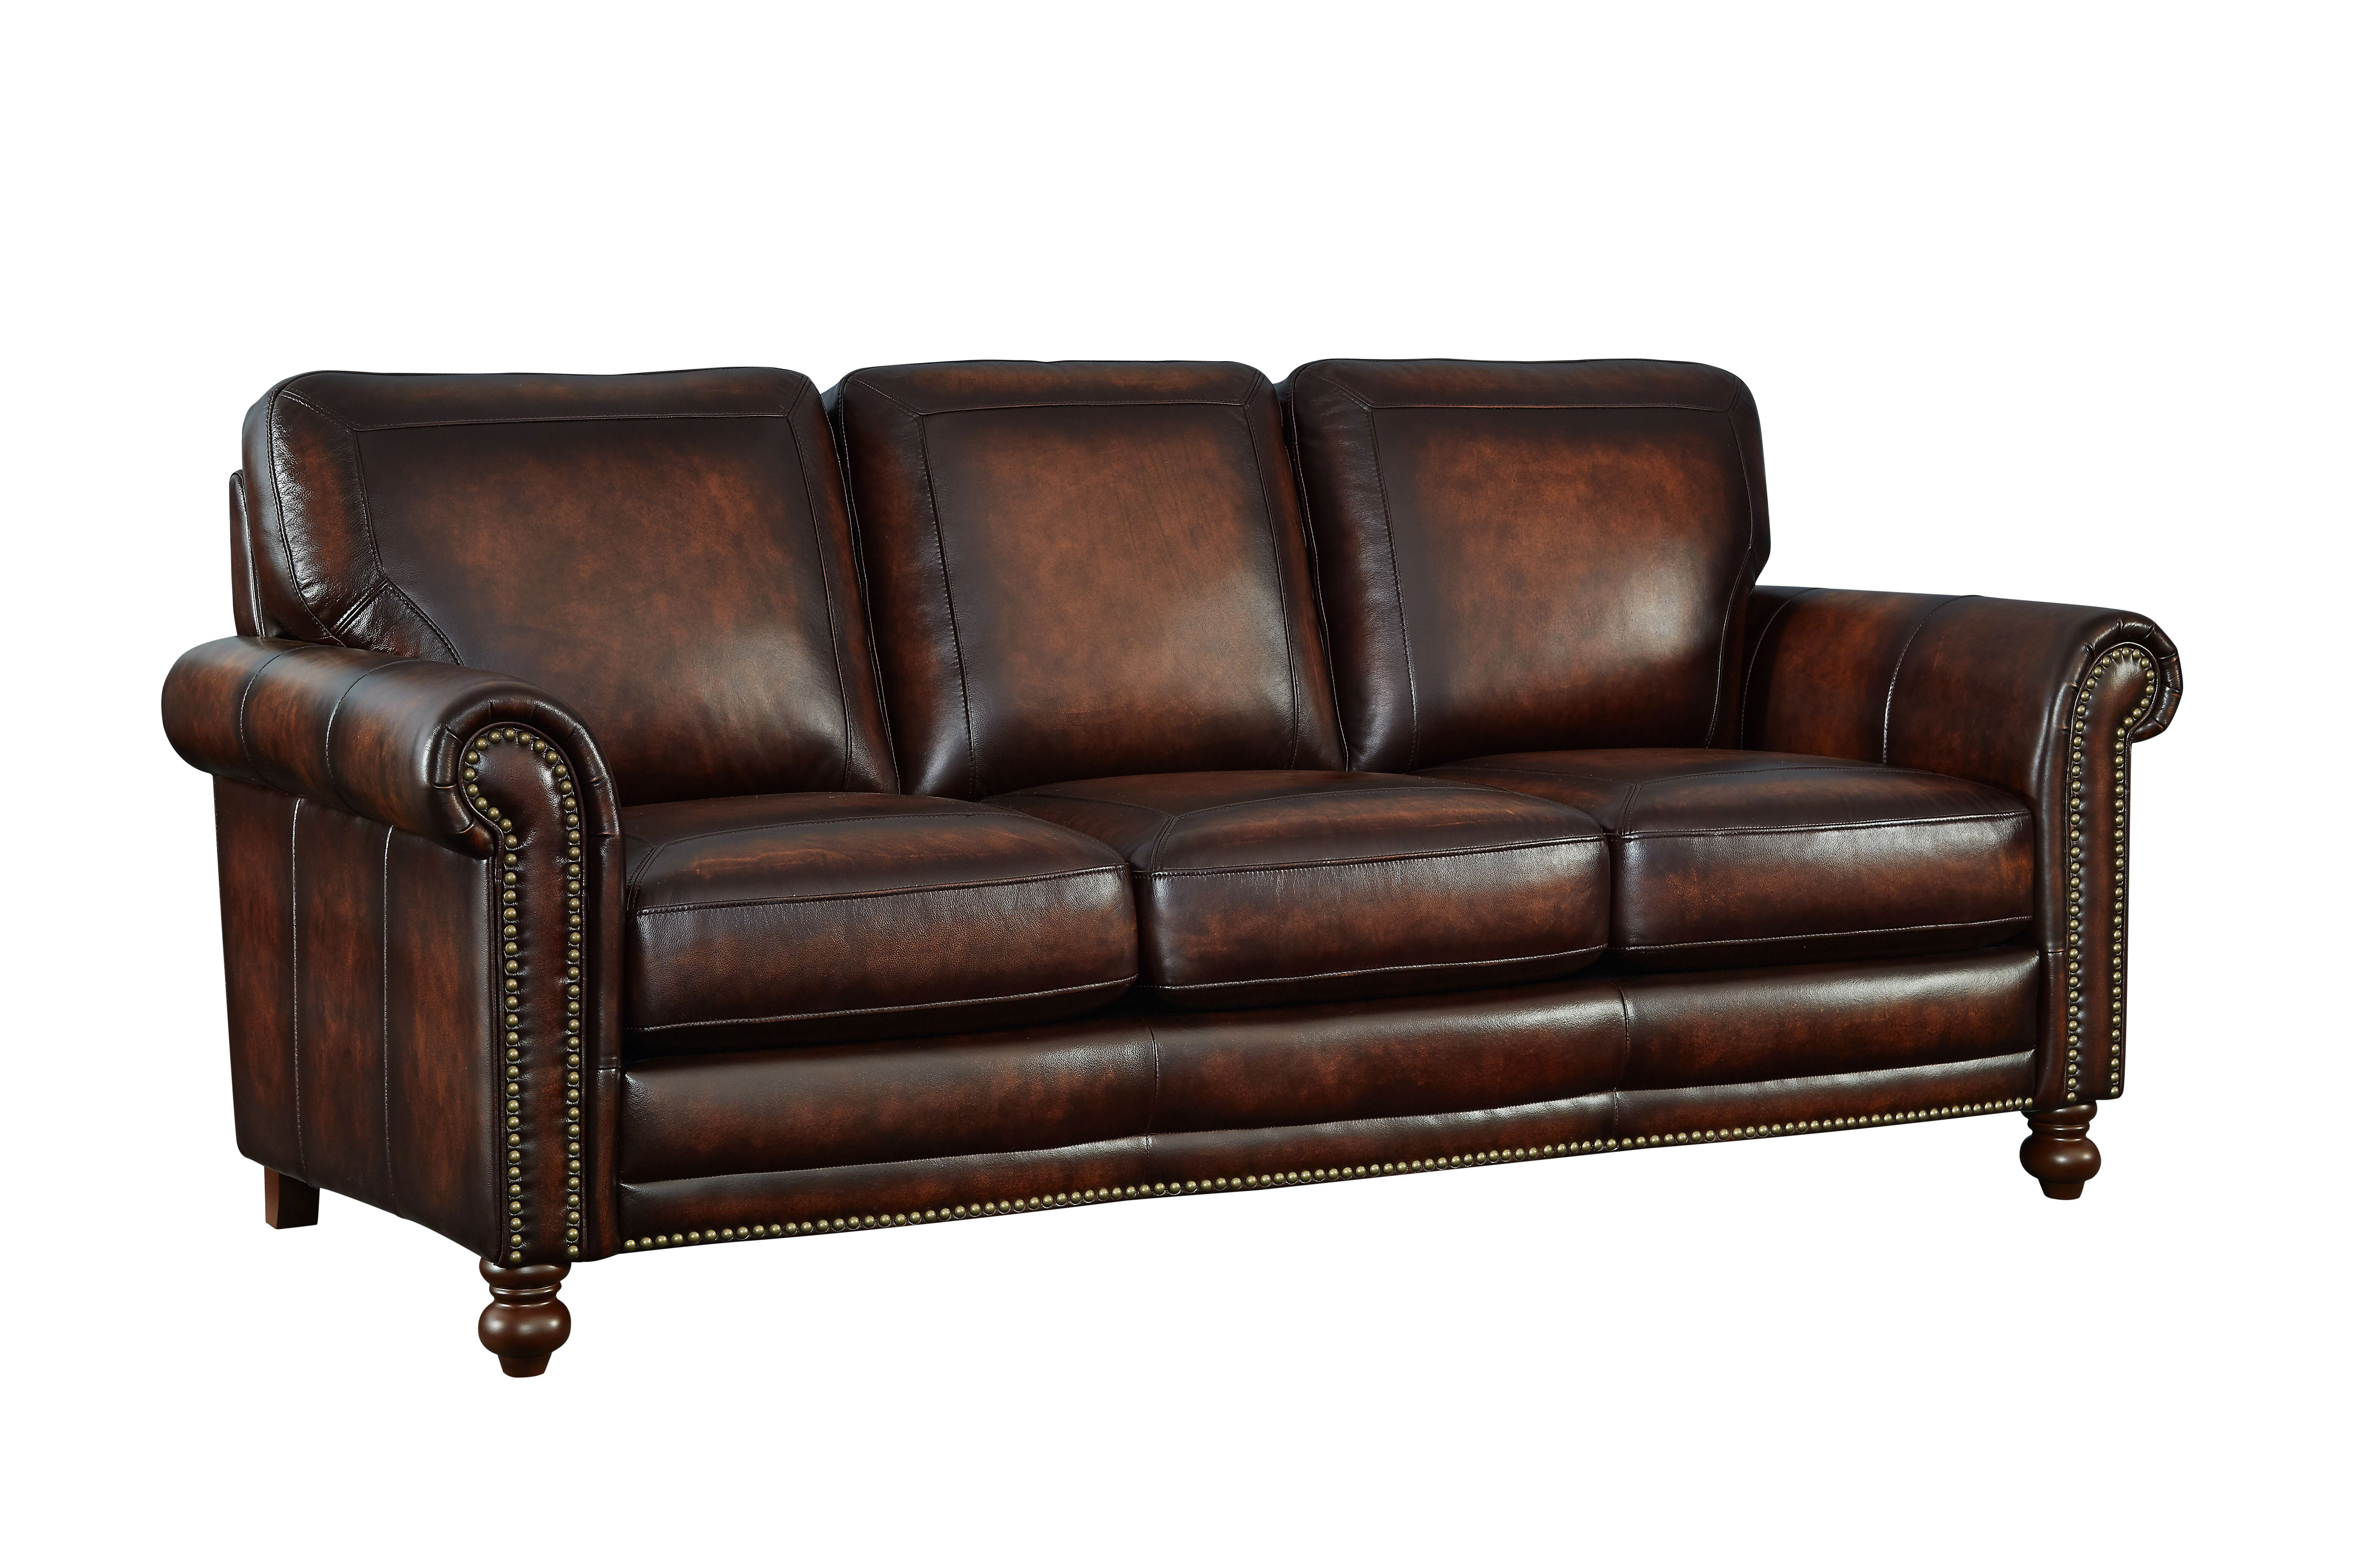 Darby Home Co Cecília Leather Sofa